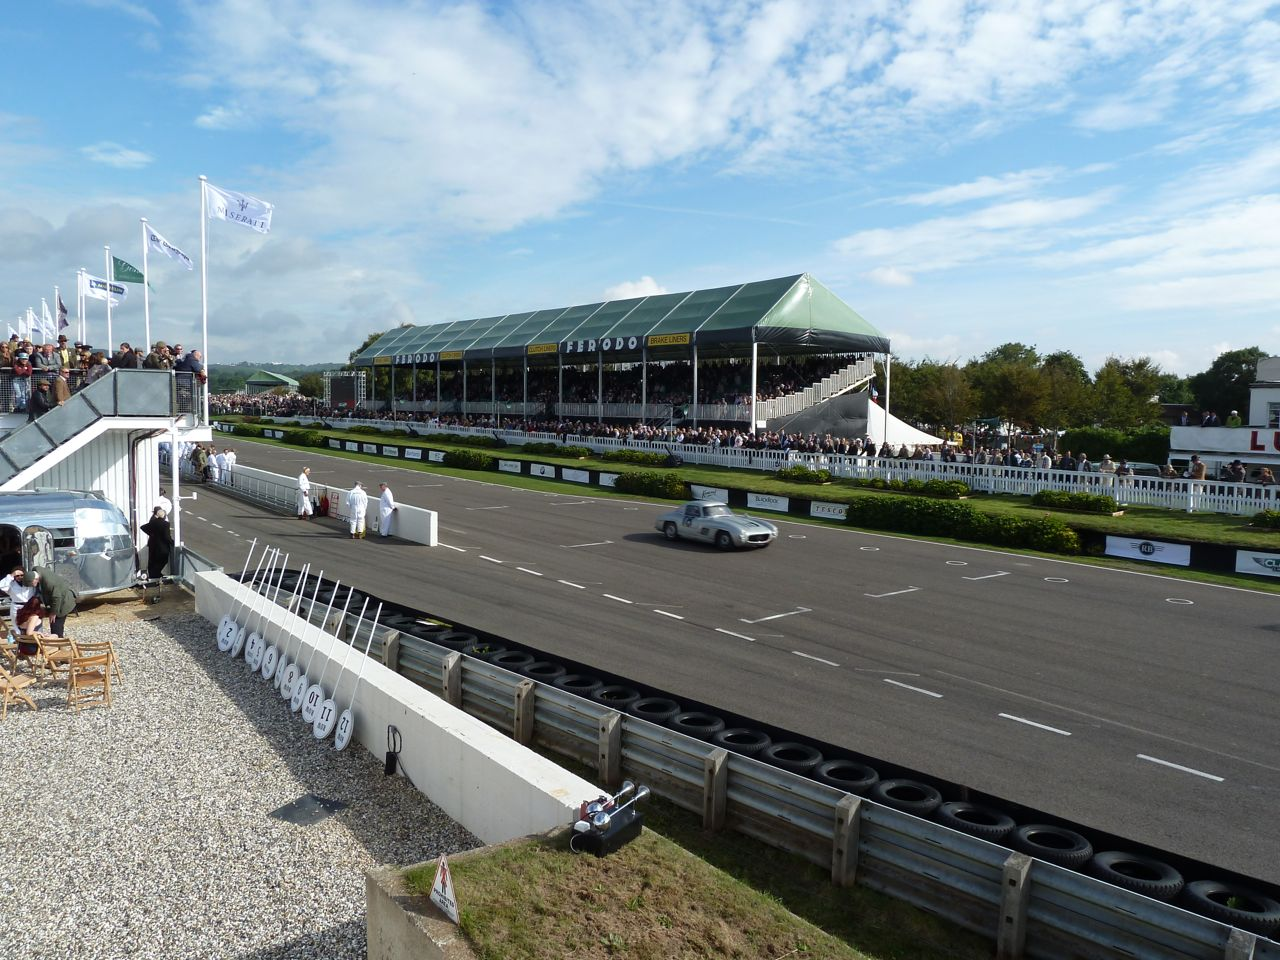 Goodwood pitlane